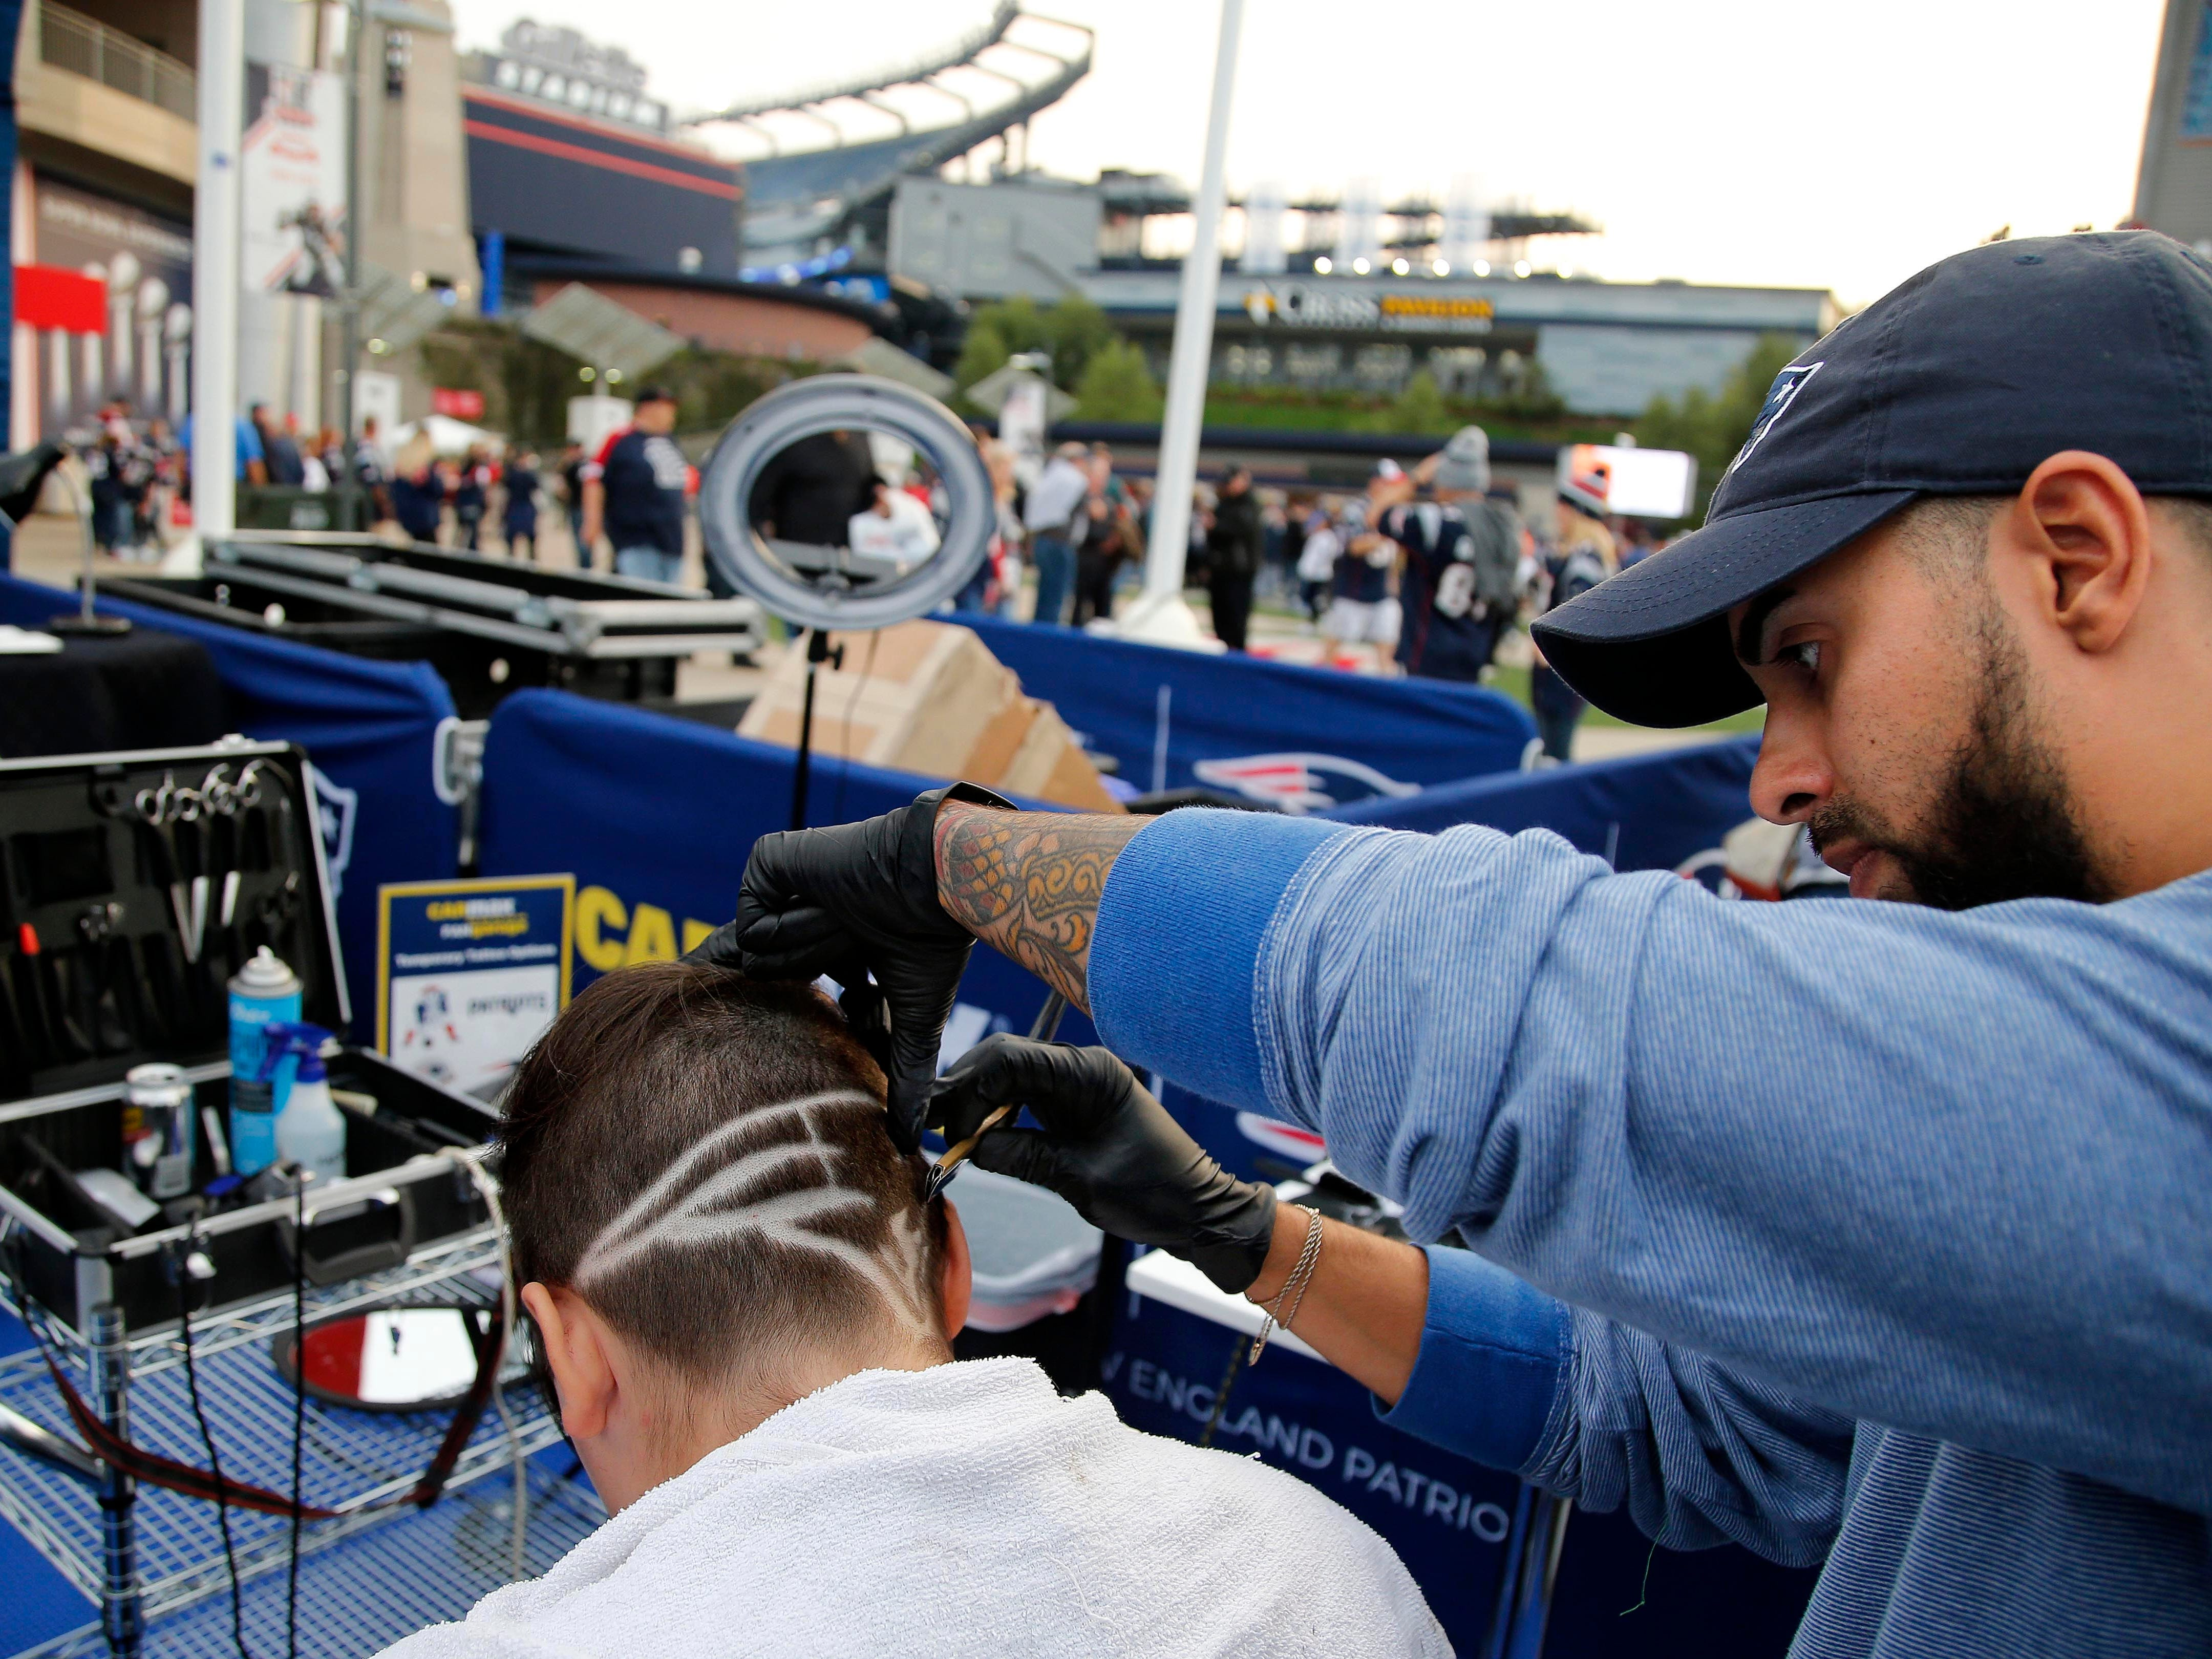 Cody Bedard has the New England Patriots logo cut into his hair by Kevin Rosas in the parking lot at Gillette Stadium before the game between the New England Patriots and the Indianapolis Colts at Gillette Stadium.